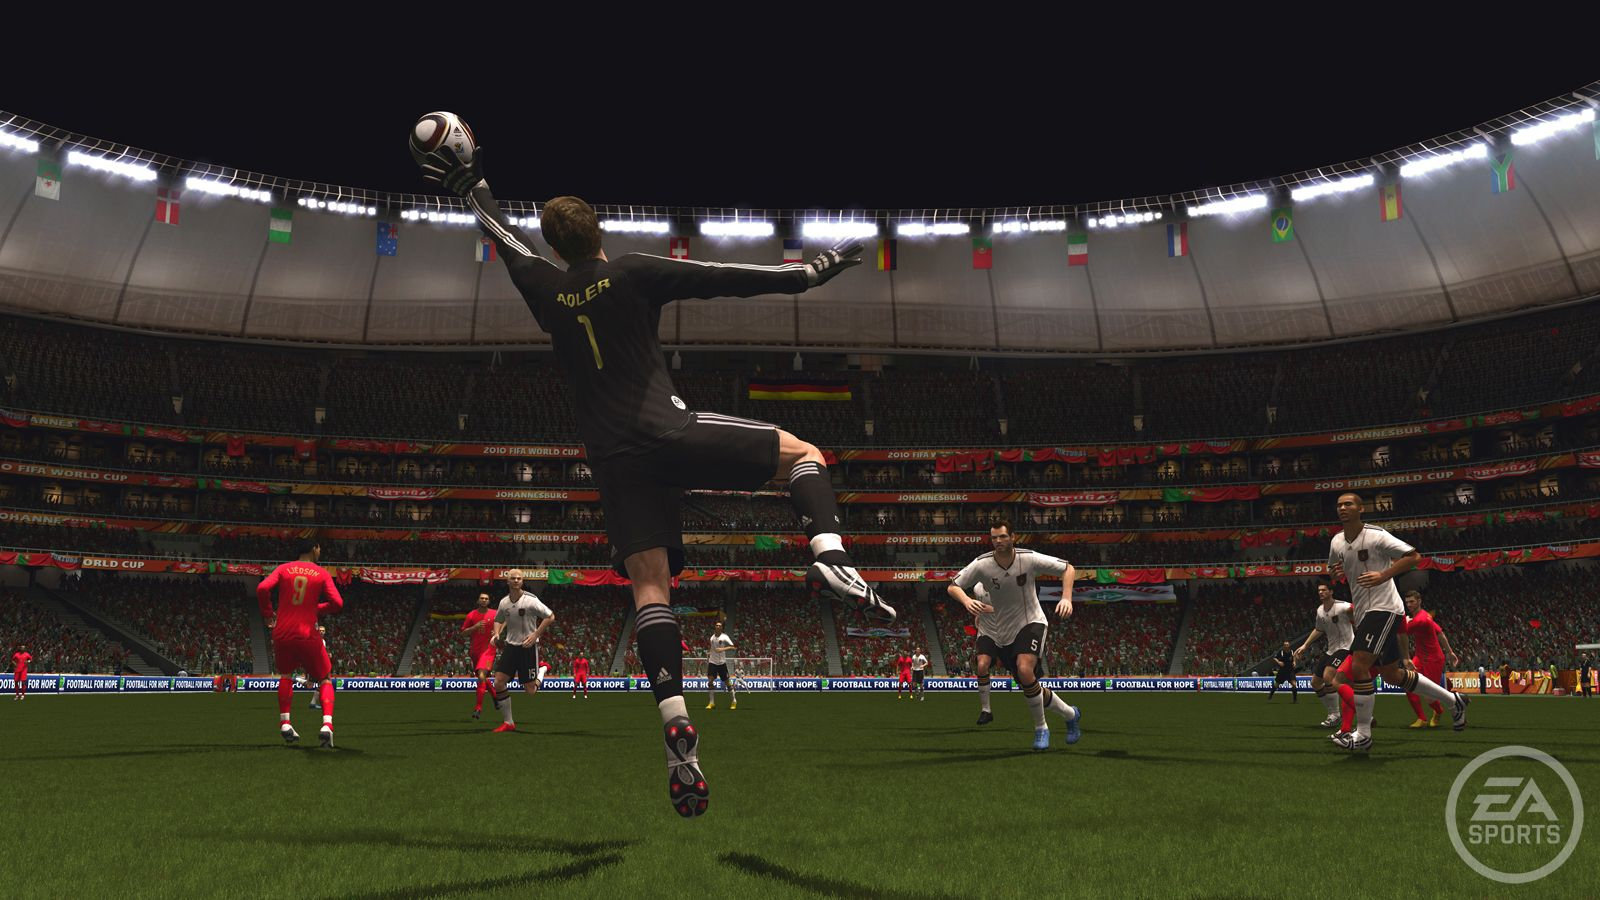 Download torrent 2010 fifa world cup south africa ps3 http